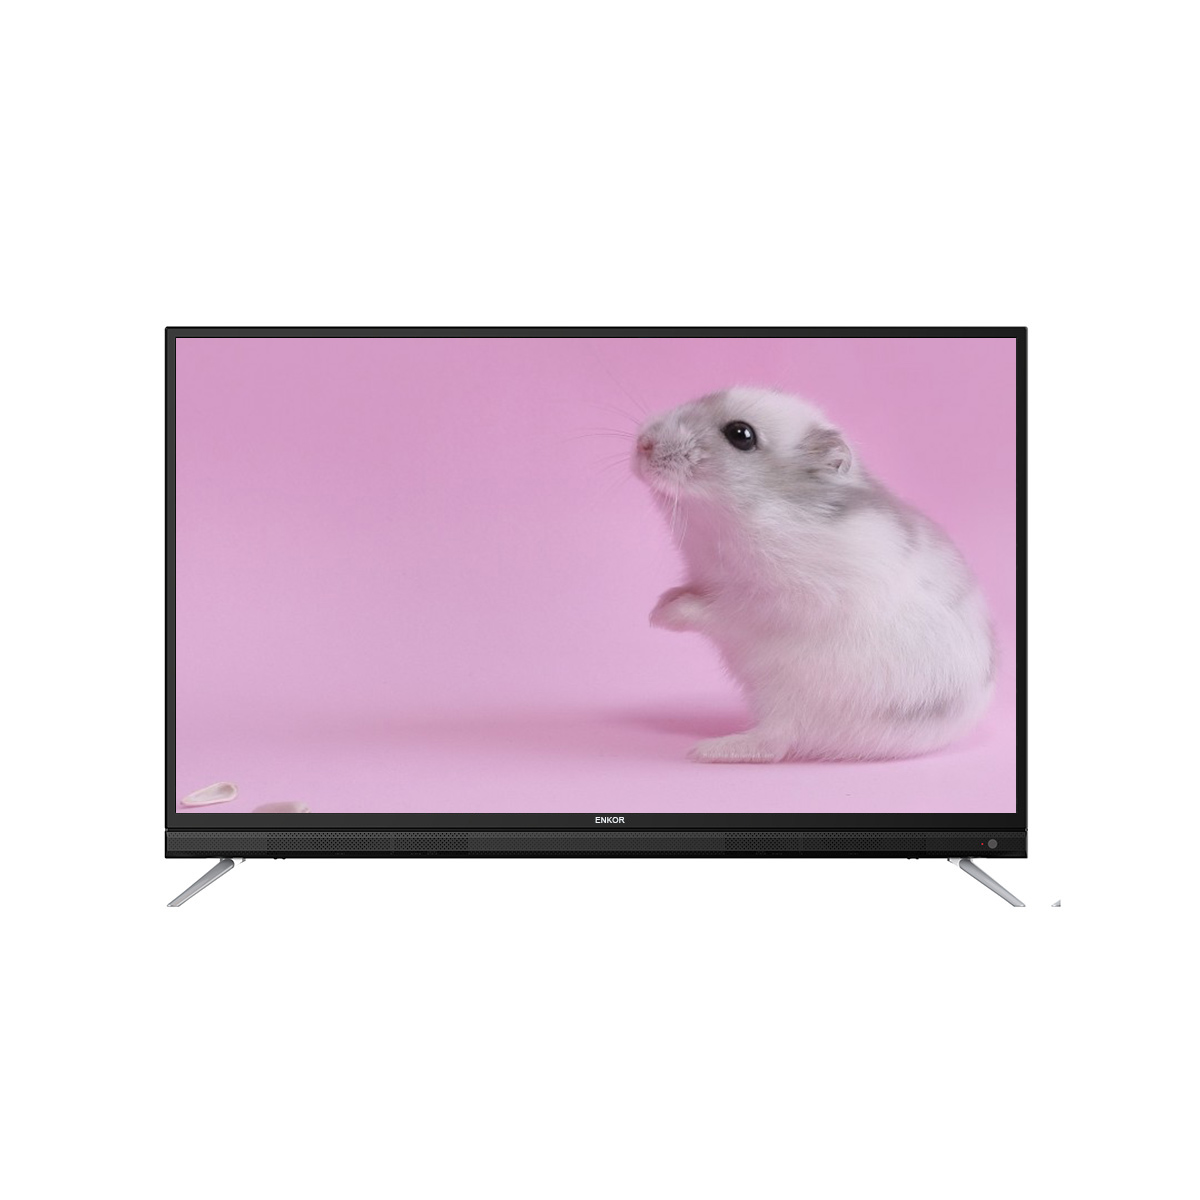 Di alta qualità 24 pollici televisione 4 k uhd smart TV led